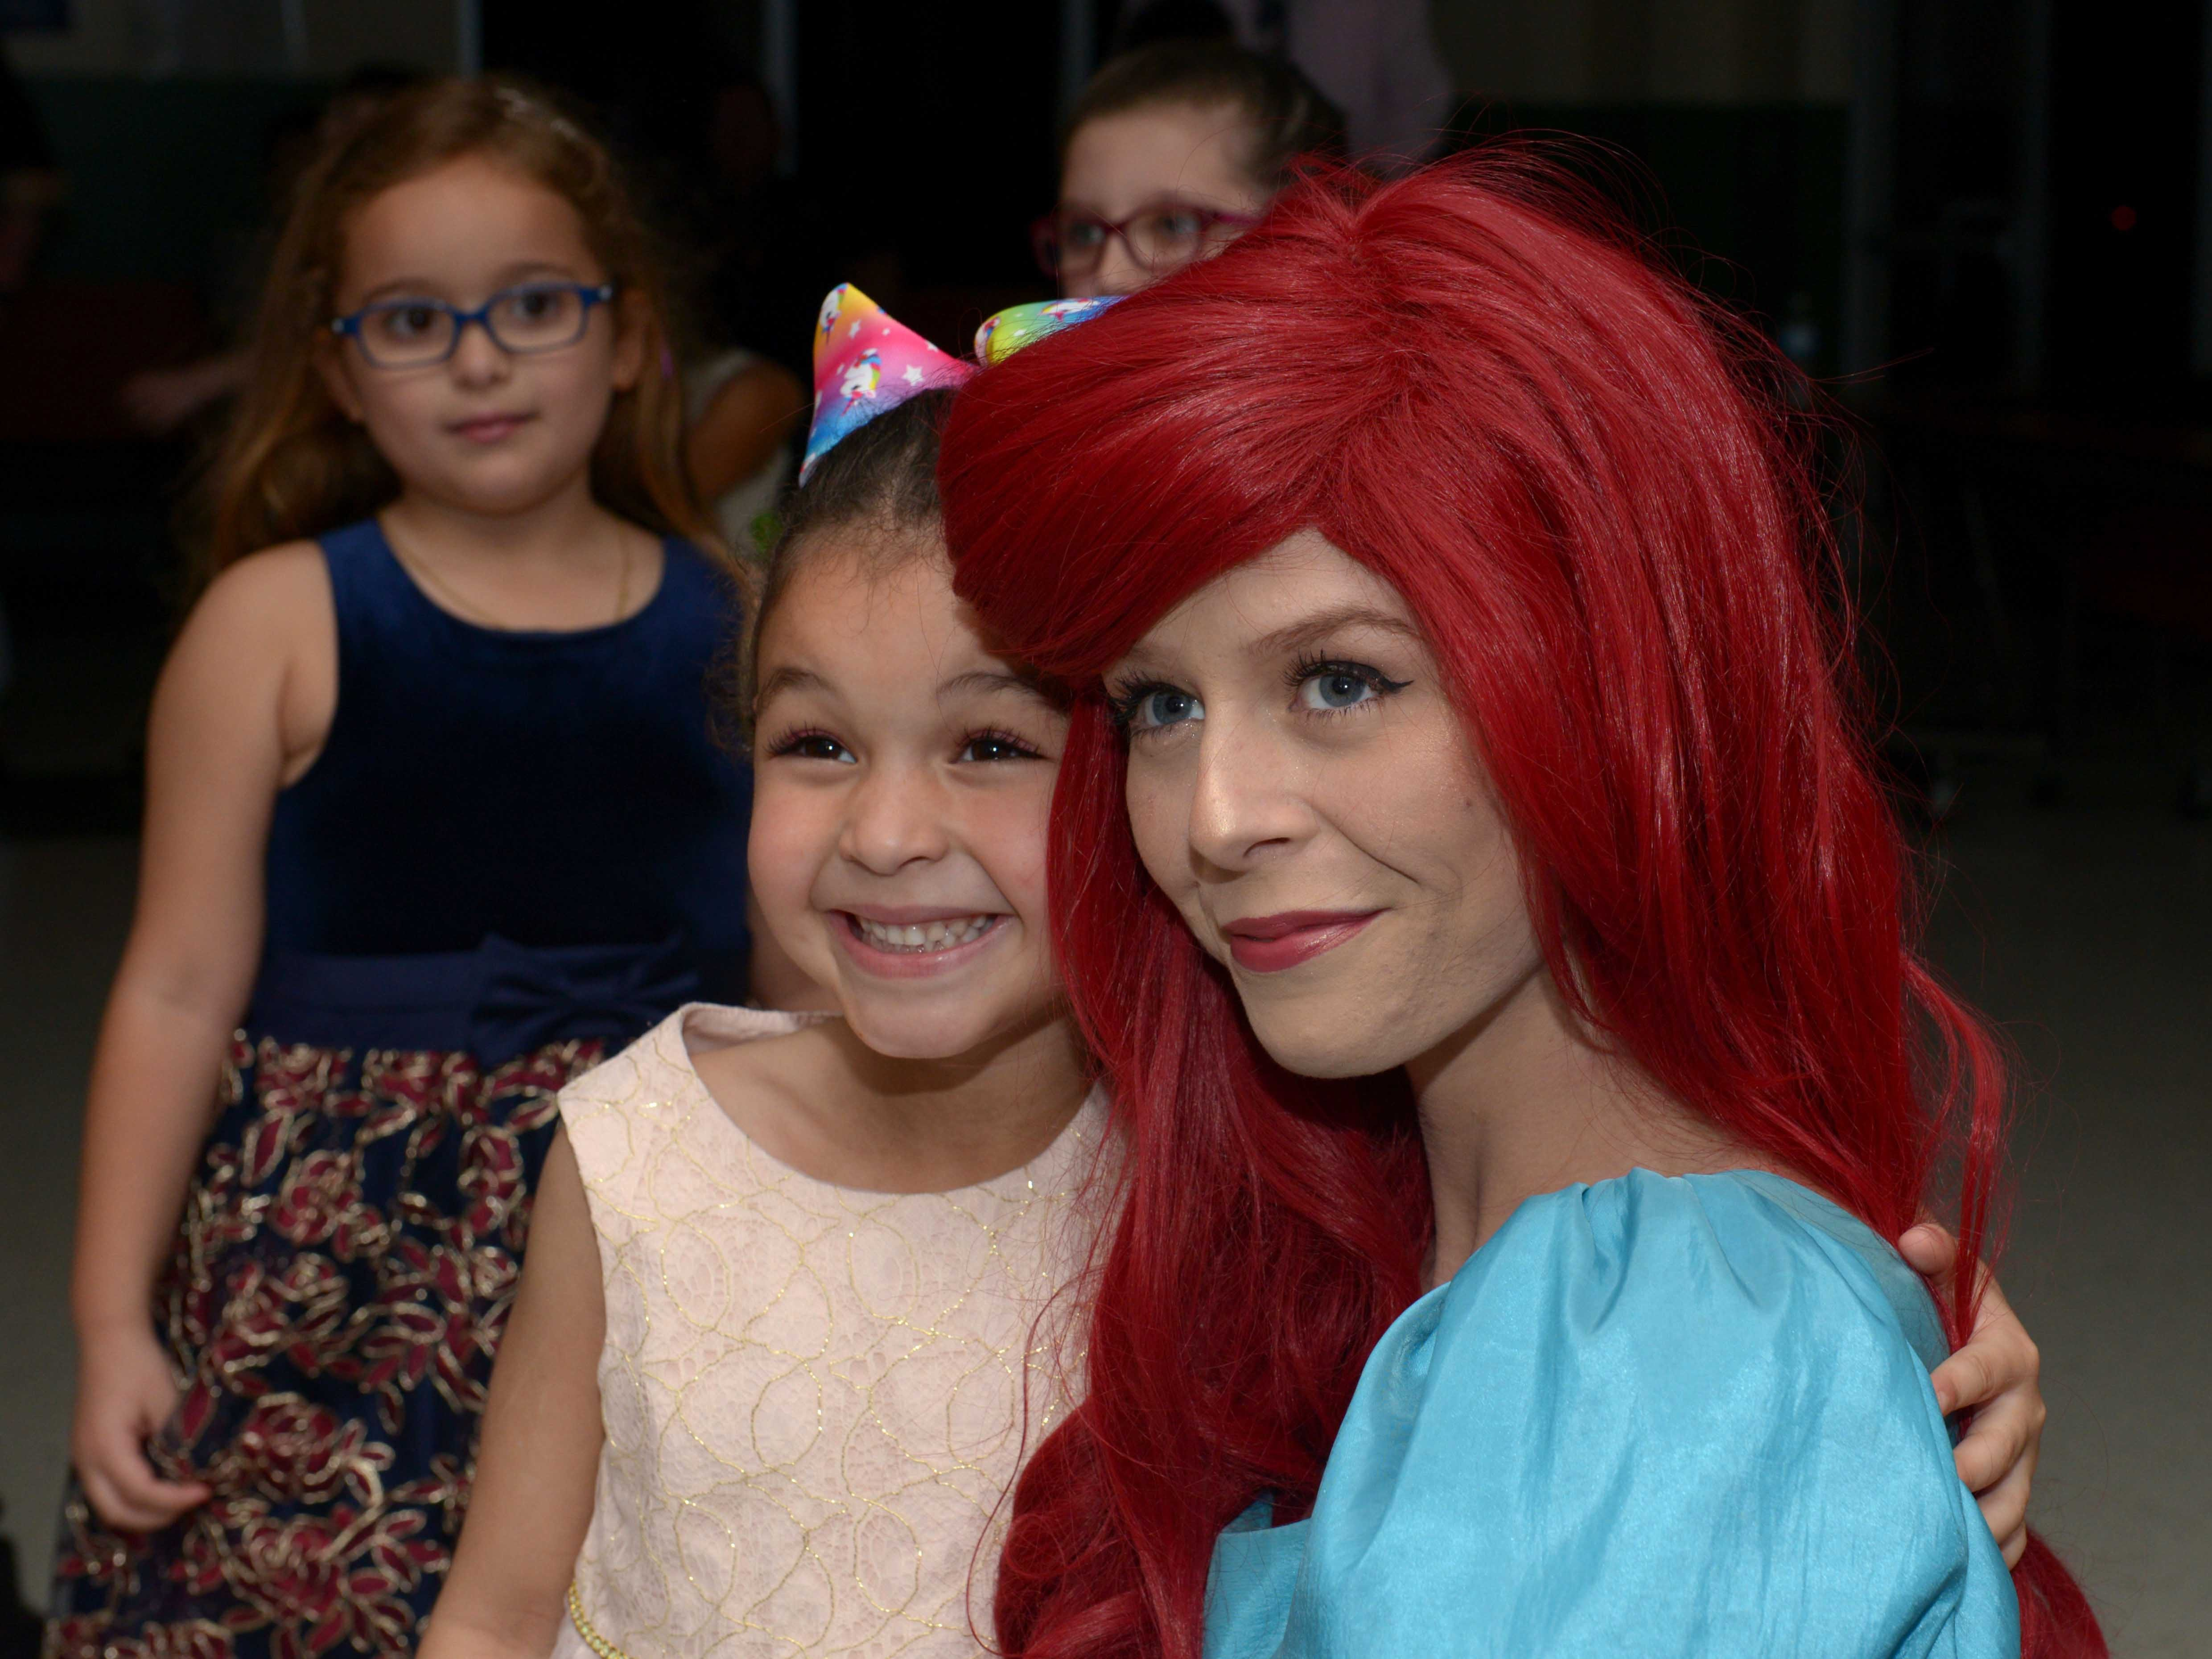 Elionna Johnson with Princess Ariel at the Father/Daughter/Someone Special Dance at Renaissance Charter School of St. Lucie.